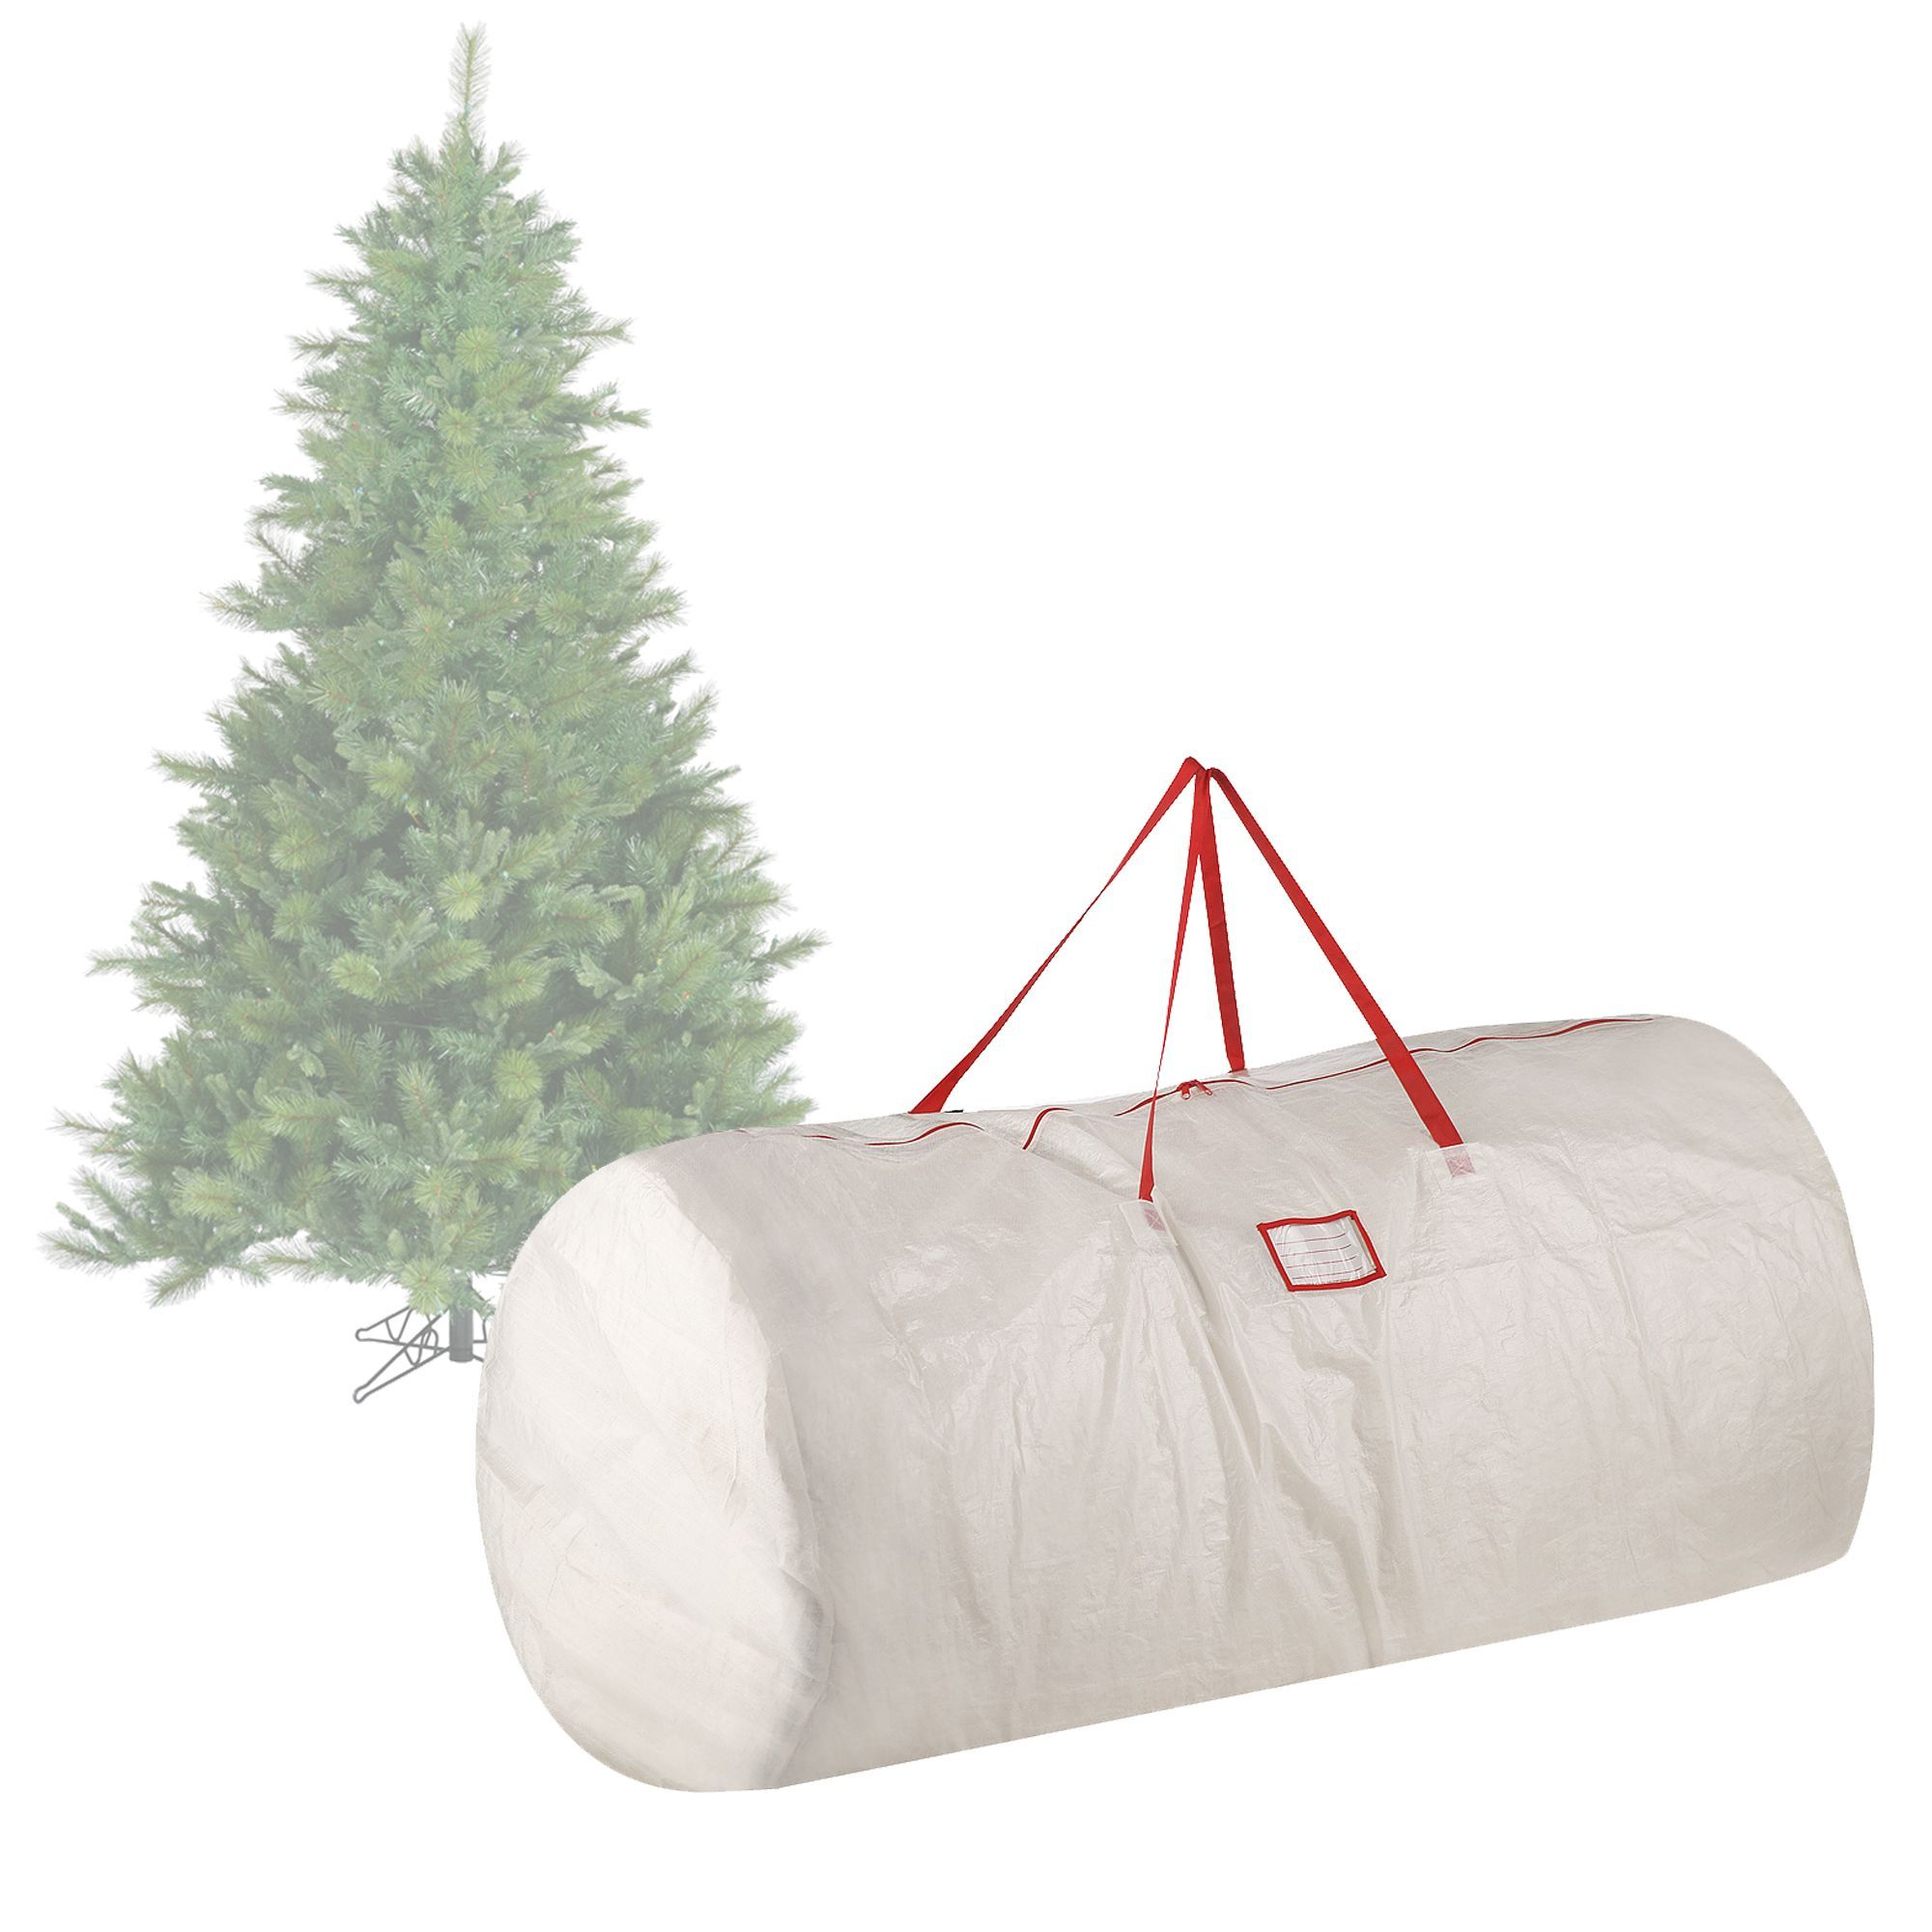 International Elf Stor Premium White Holiday Christmas Tree Storage Bag Large For 9 Foot Tre Christmas Tree Storage Bag Christmas Tree Storage